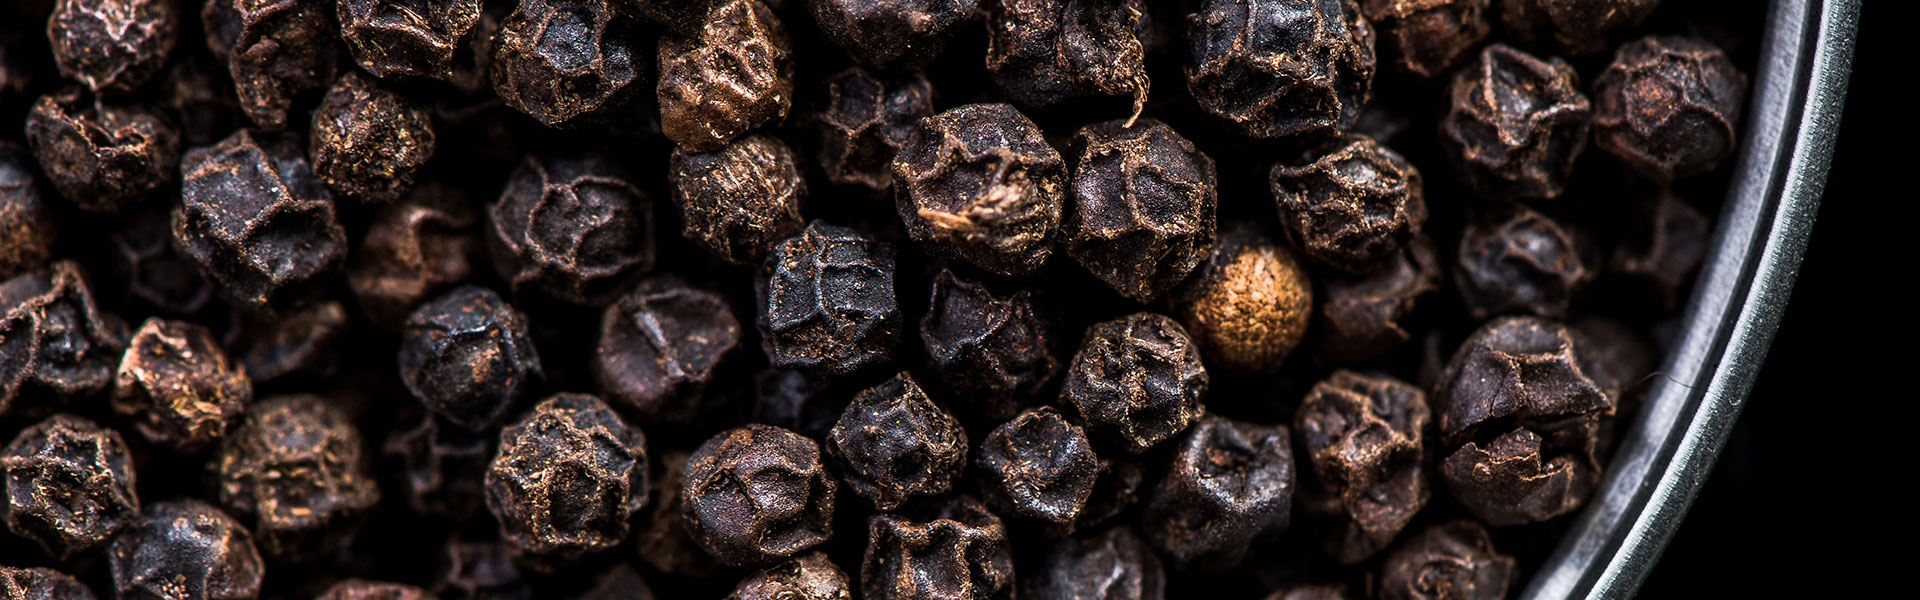 black-pepper-seeds-in-pot-with-copy-space-PV7Y3LR